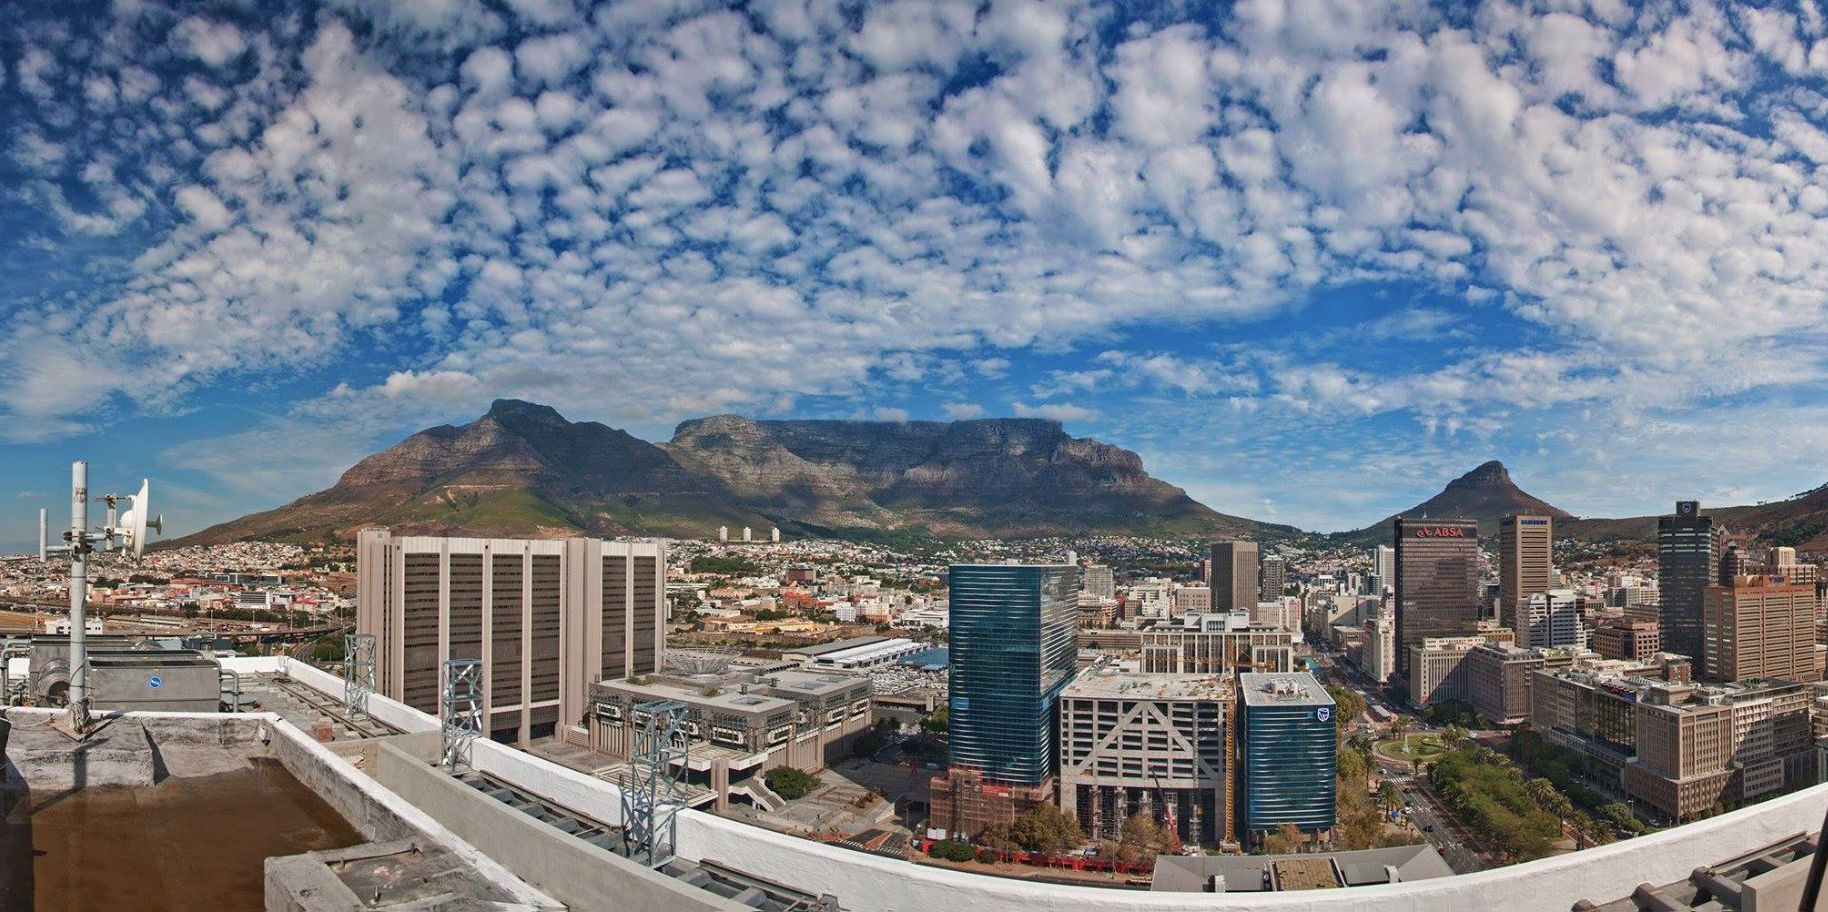 A thank you note to Cape Town… Fancam-style